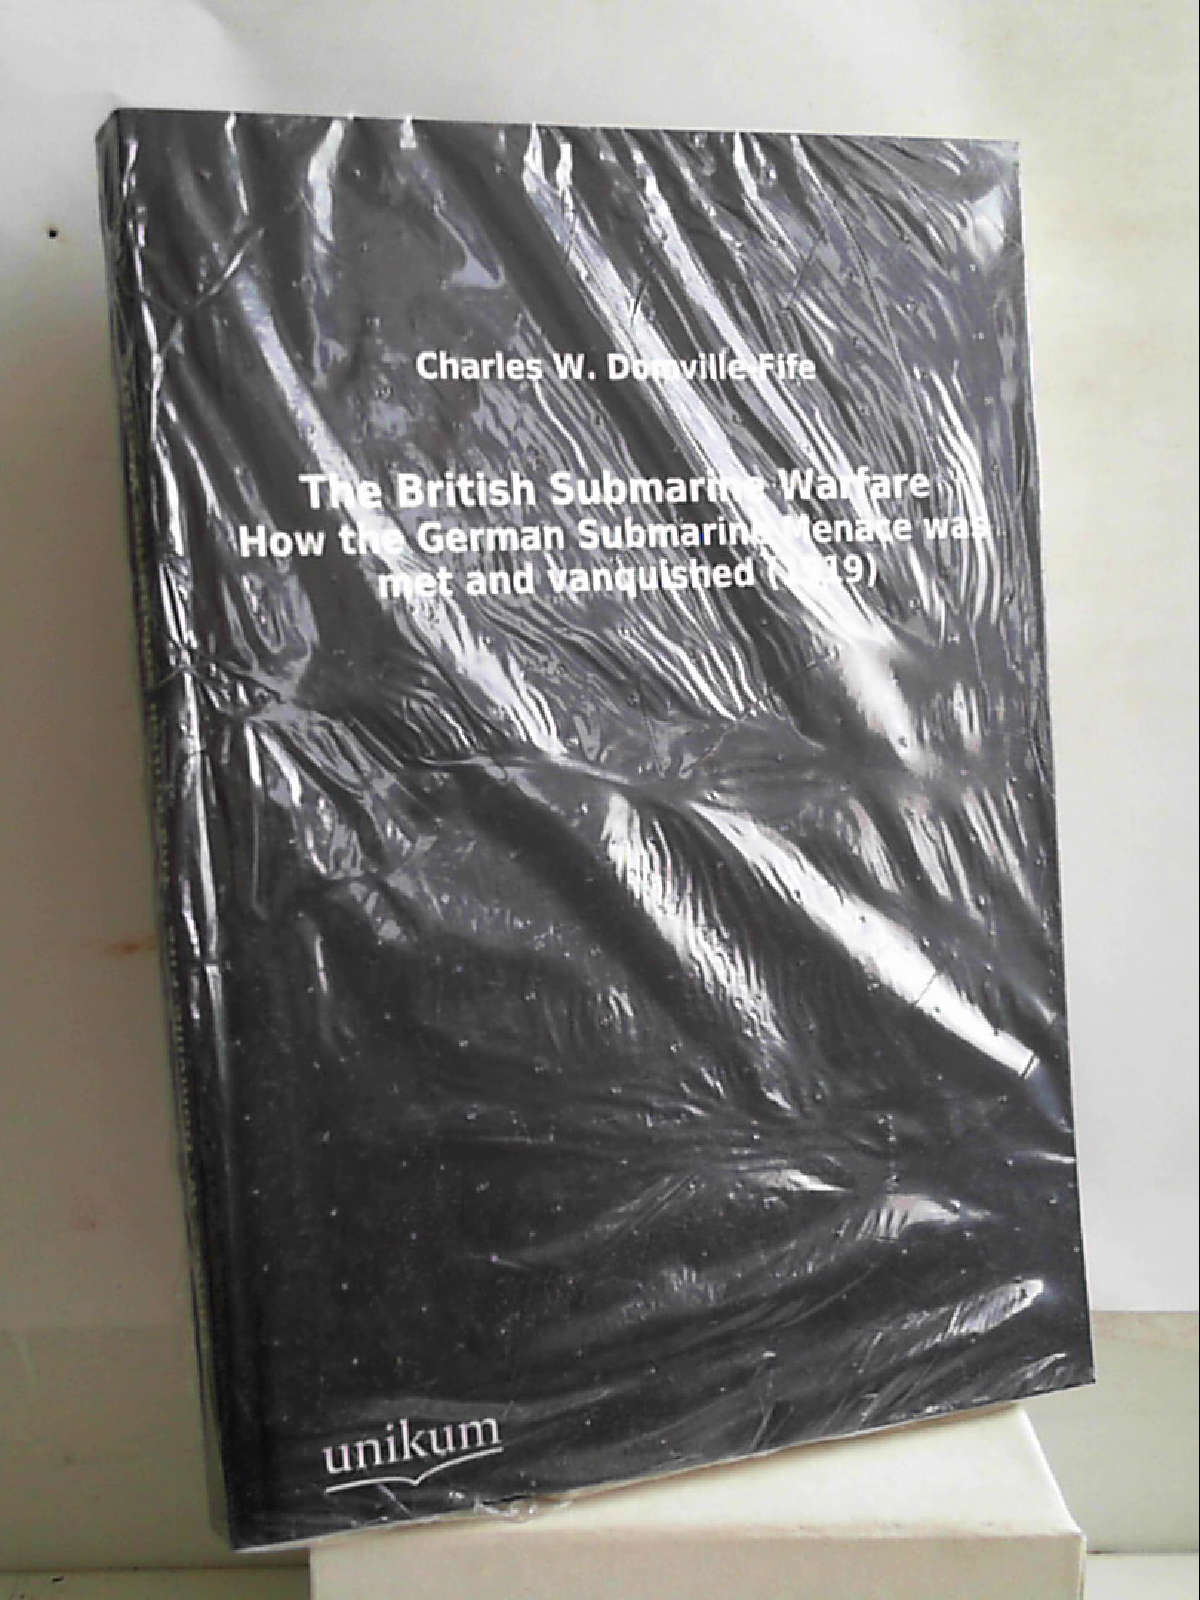 The British Submarine Warfare: How the German Submarine Menace was met and vanquished (1919) [Paperback] [Nov 27, 2011] Domville-Fife, Charles W. - Charles W. Domville-Fife